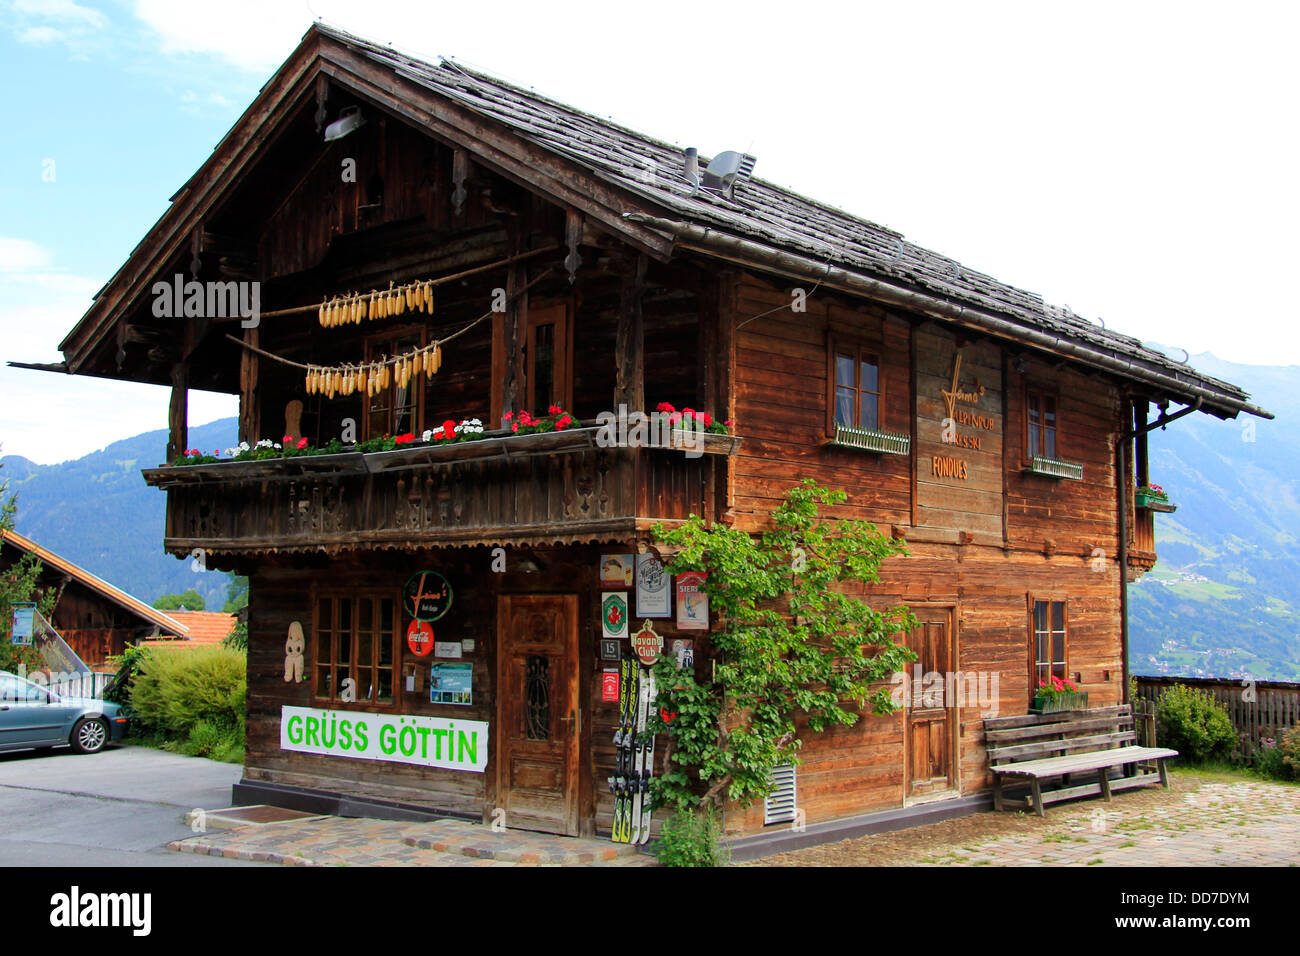 Altes holzhaus in ladis tirol österreich stock photo